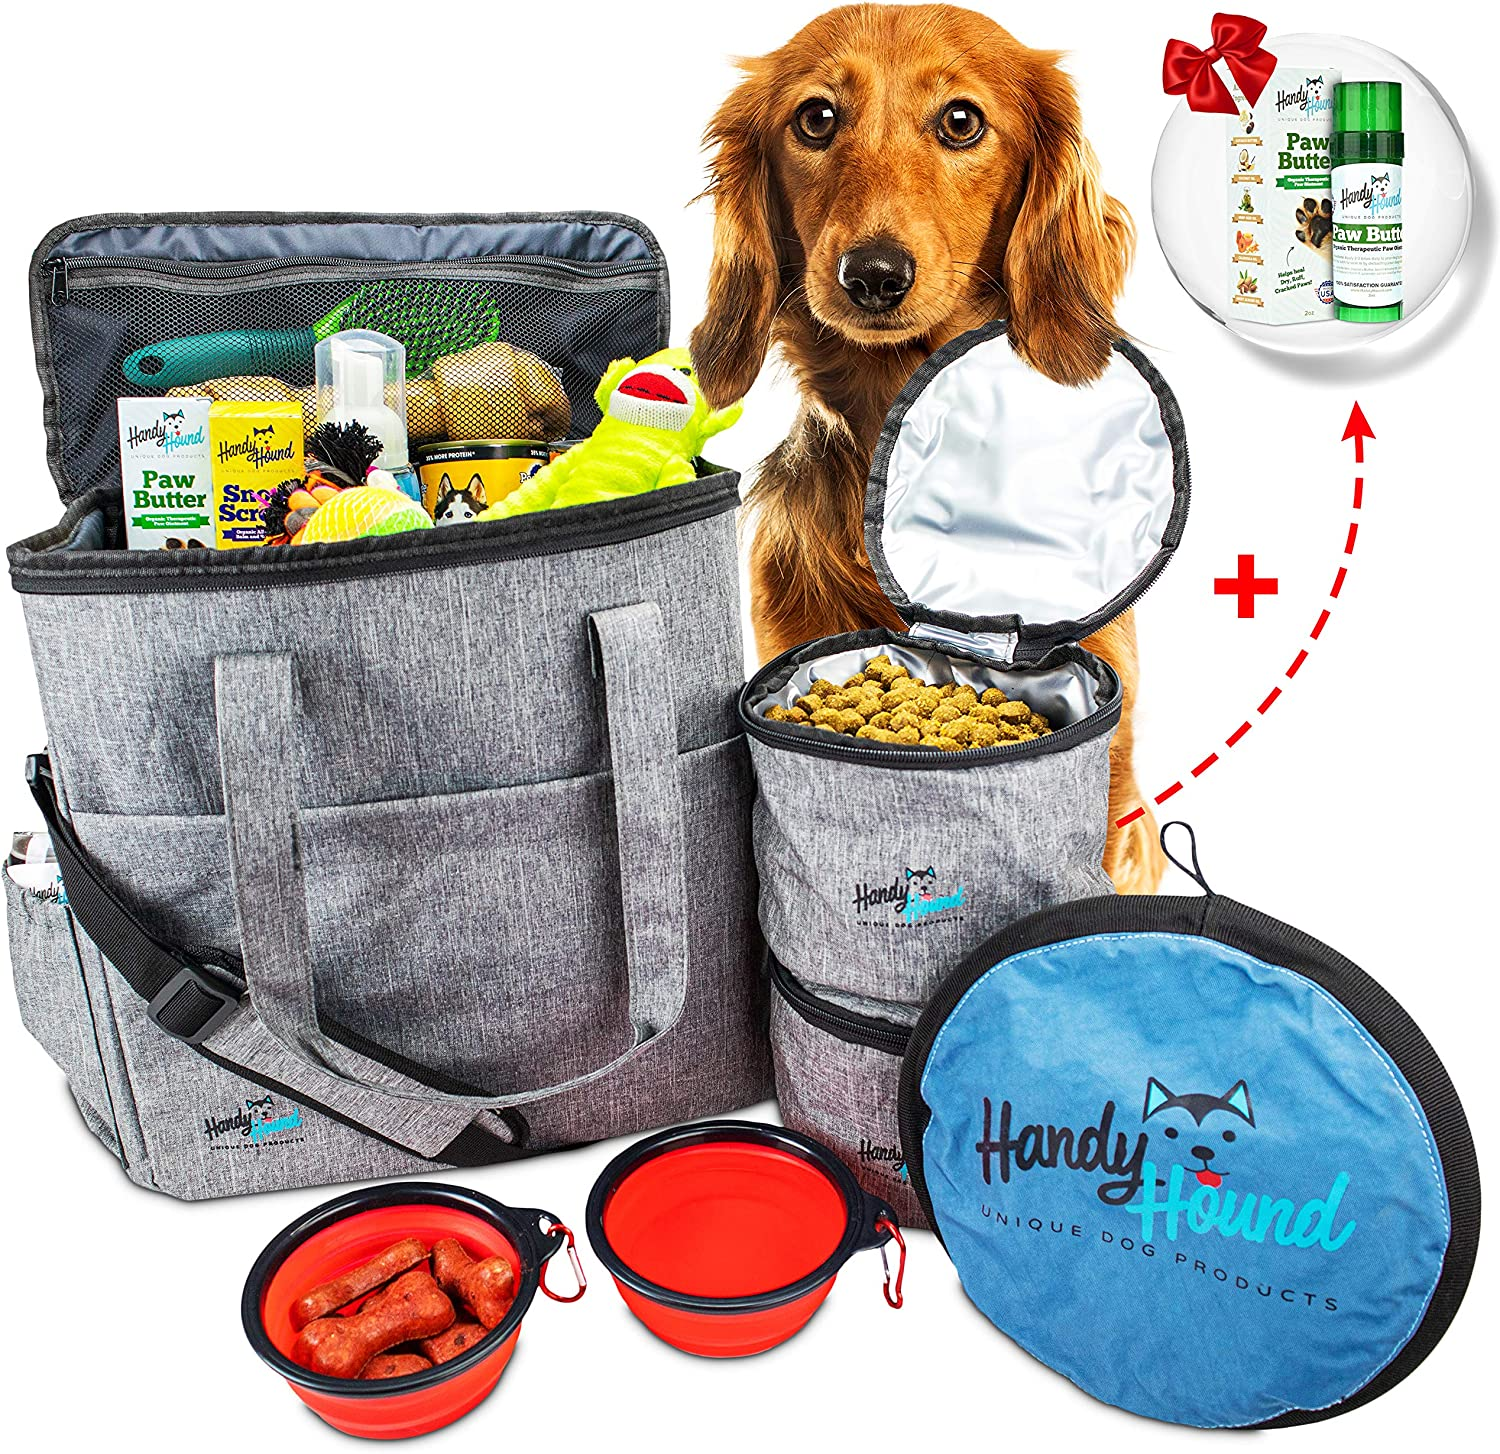 Pet Travel Bag - Easy Travel with Our Dog Travel Bag – Includes Paw Butter, Frisbee, Airline Approved Dog Travel Bag, 2 Collapsible Food-Water Bowls, 2 Food Travel Bags - Perfect for Dog, Cat